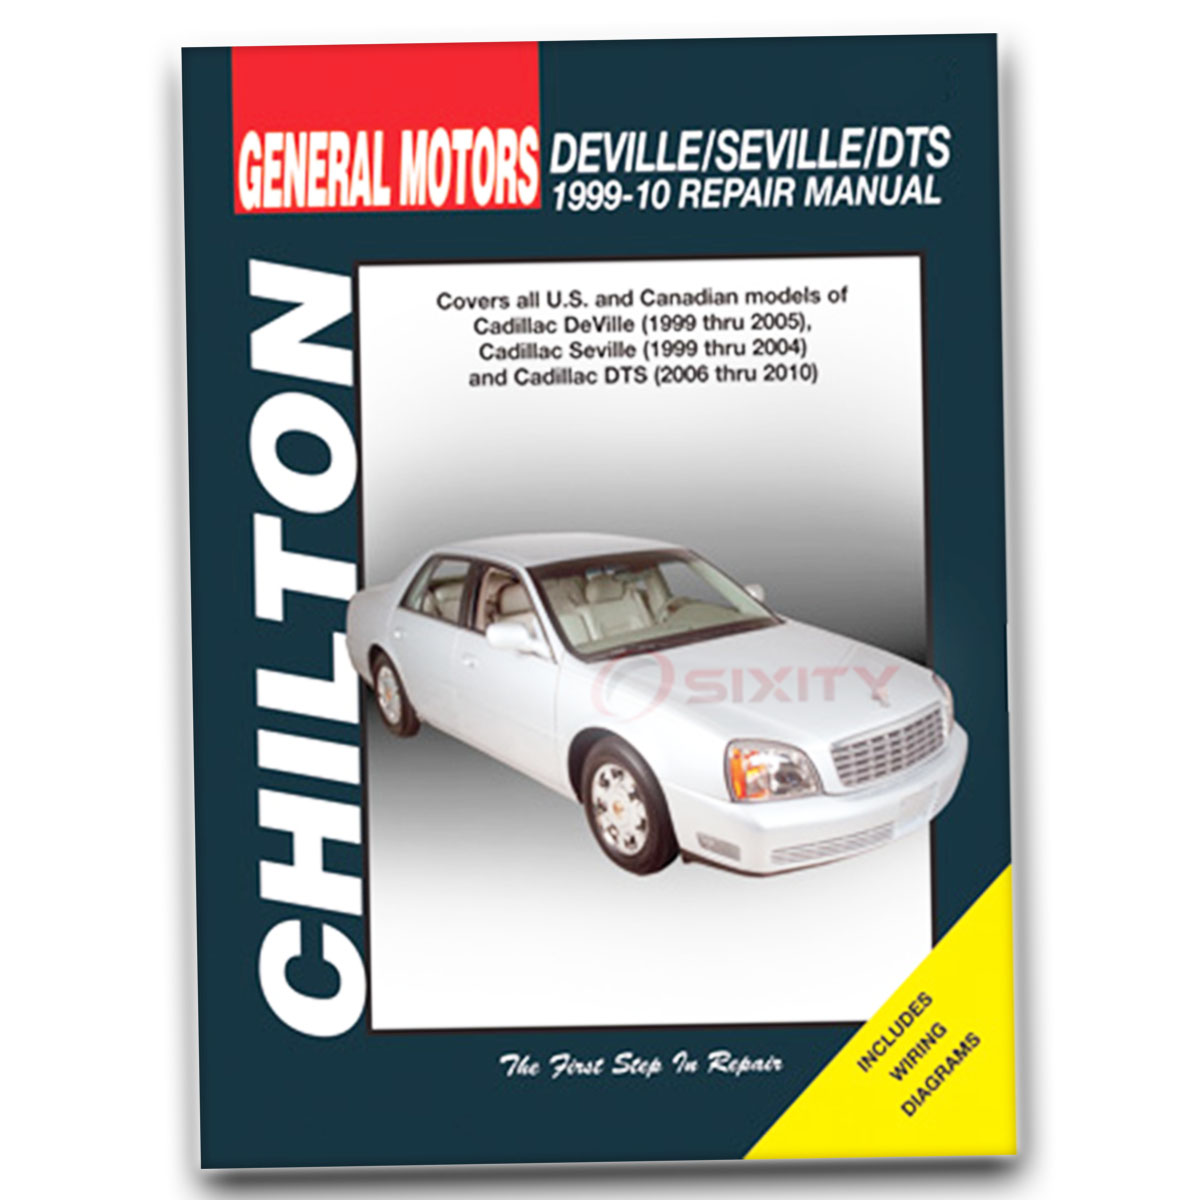 cadillac seville chilton repair manual sts sls shop service garage rh ebay com Cadillac DeVille Cadillac XTS Driving Lights